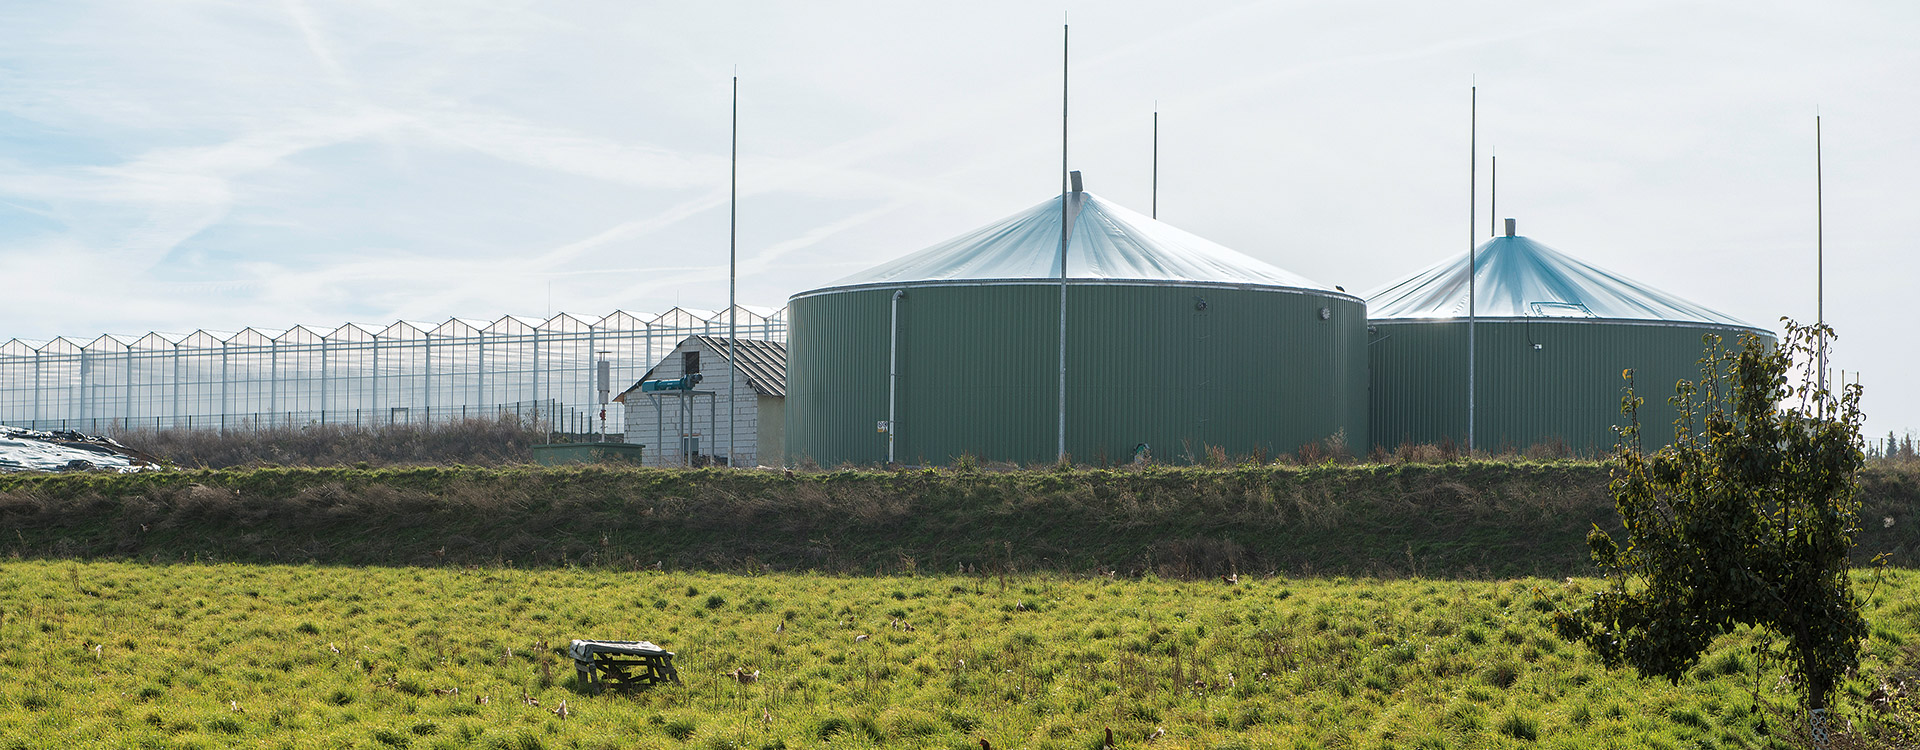 EcoDigester foil roof - Lipp System